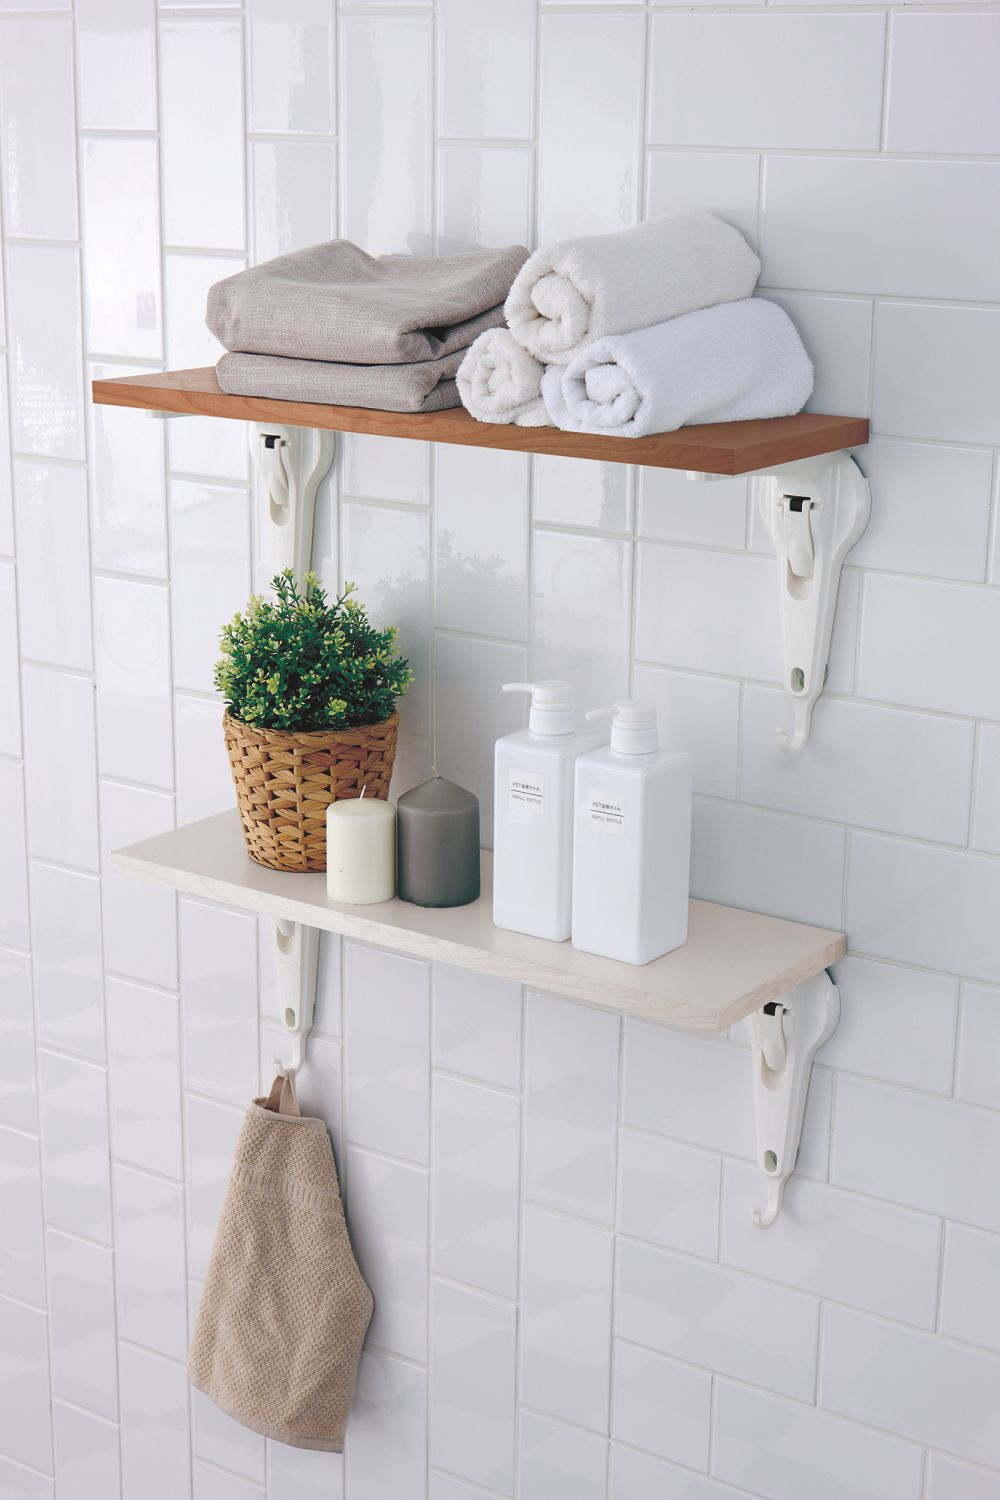 S22 WALL SHELF SET